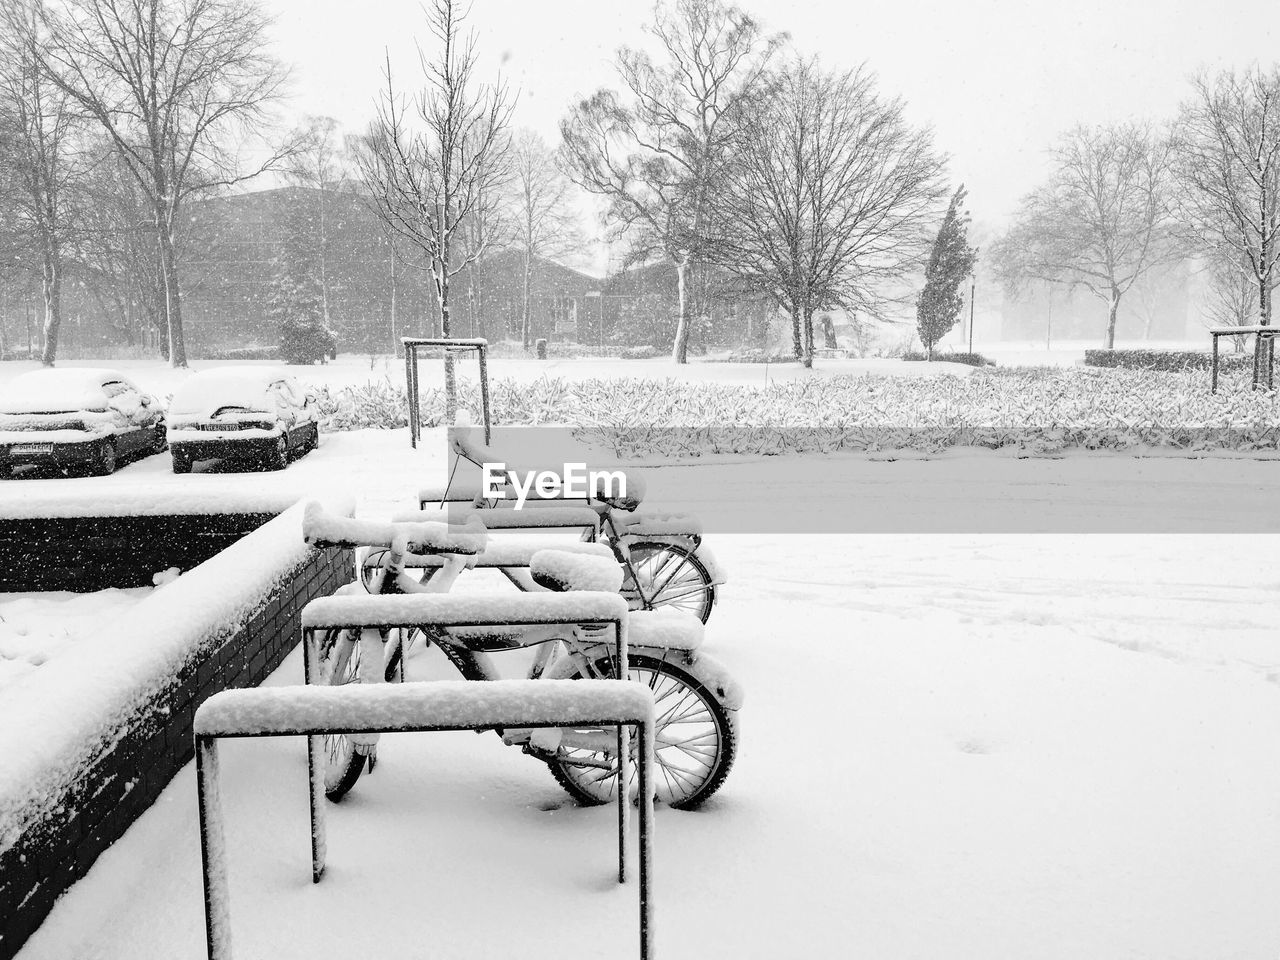 snow, winter, cold temperature, tree, bare tree, plant, nature, day, no people, field, covering, frozen, park, empty, tranquility, land, tranquil scene, absence, outdoors, snowing, park bench